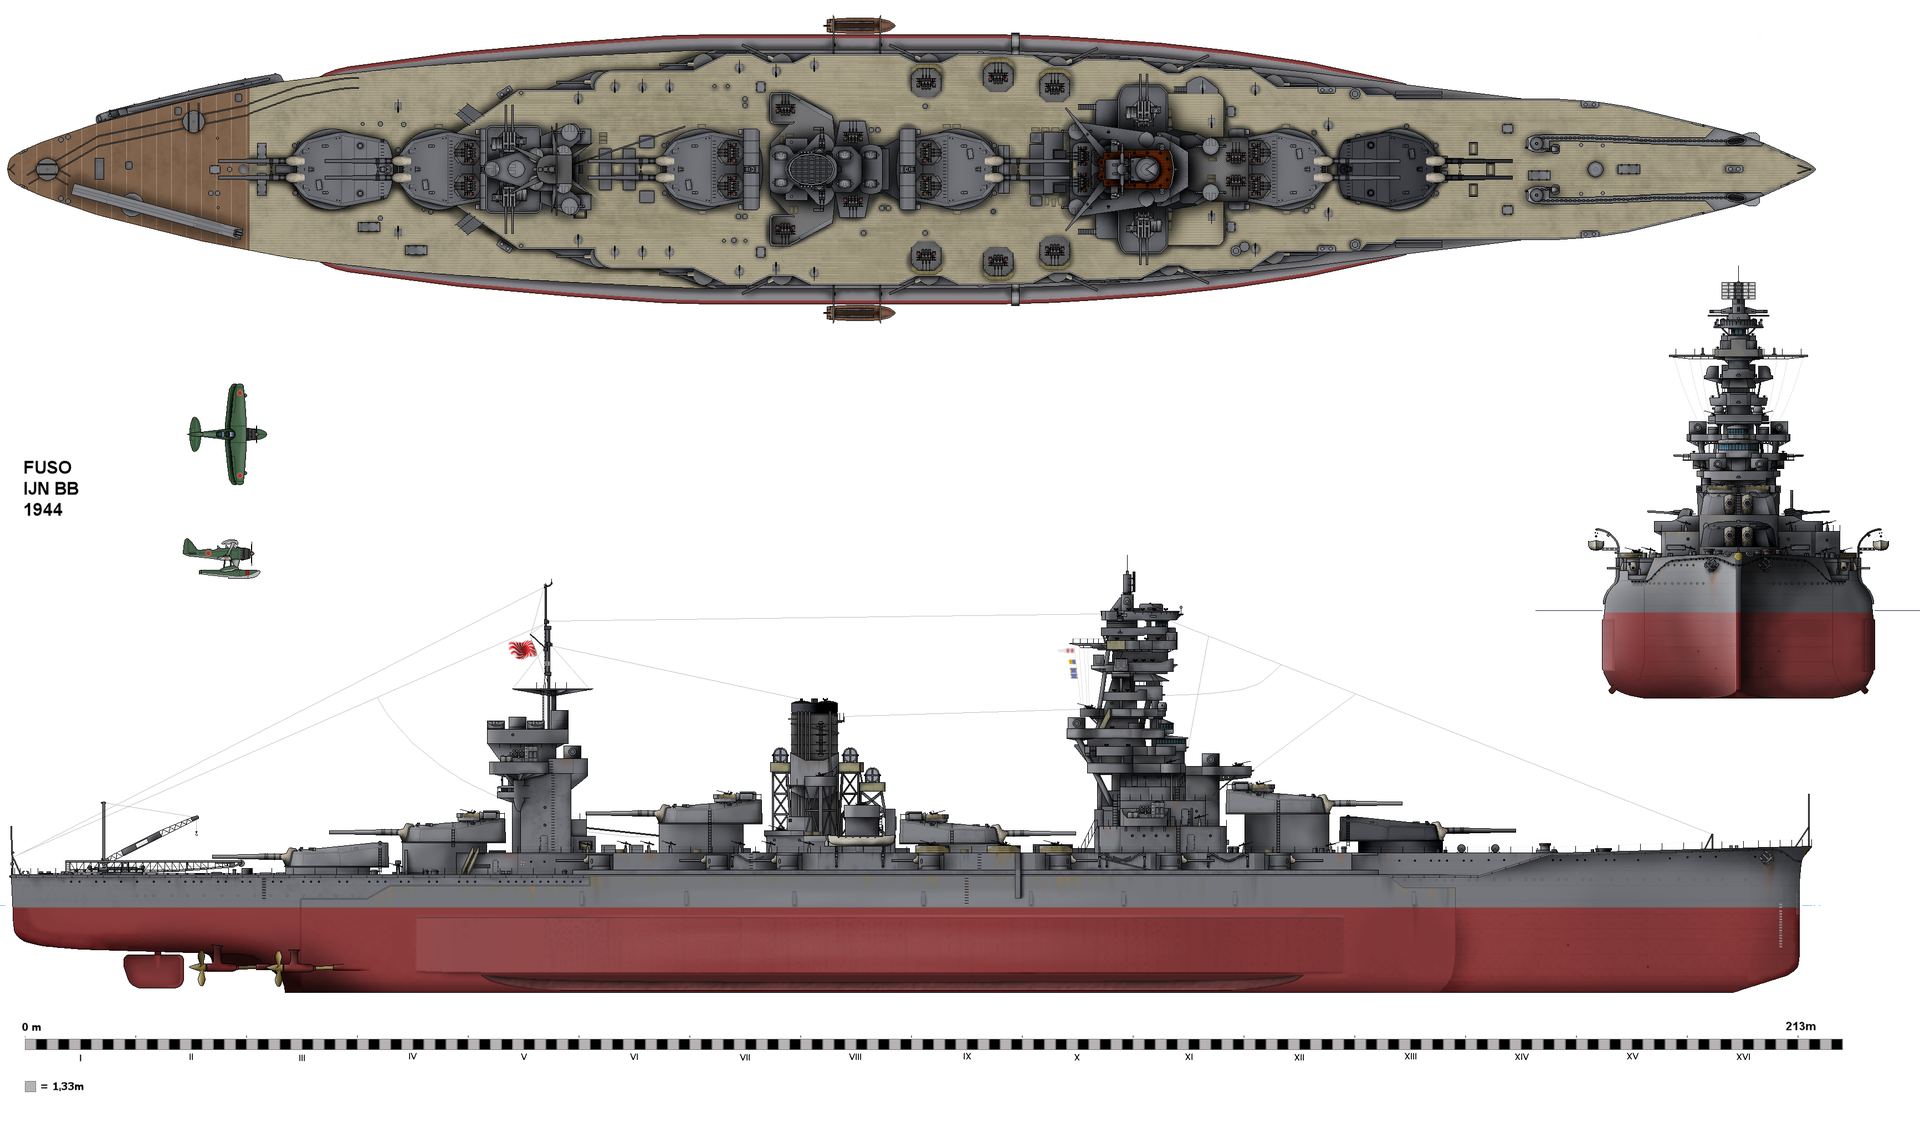 Line drawing of Fuso as she appeared in 1944 | Projects to